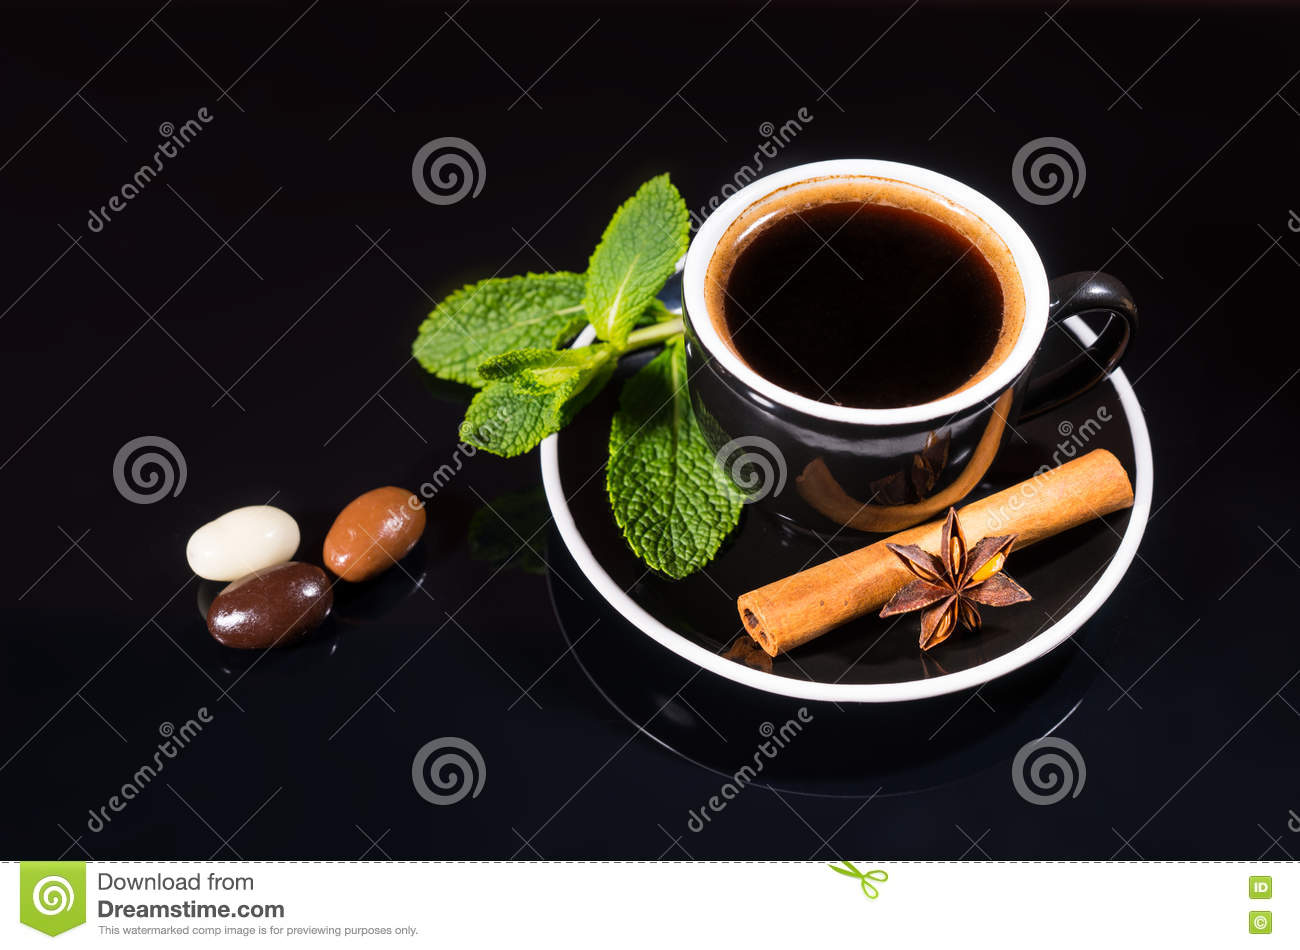 Black Coffee with Chocolate Covered Coffee Beans